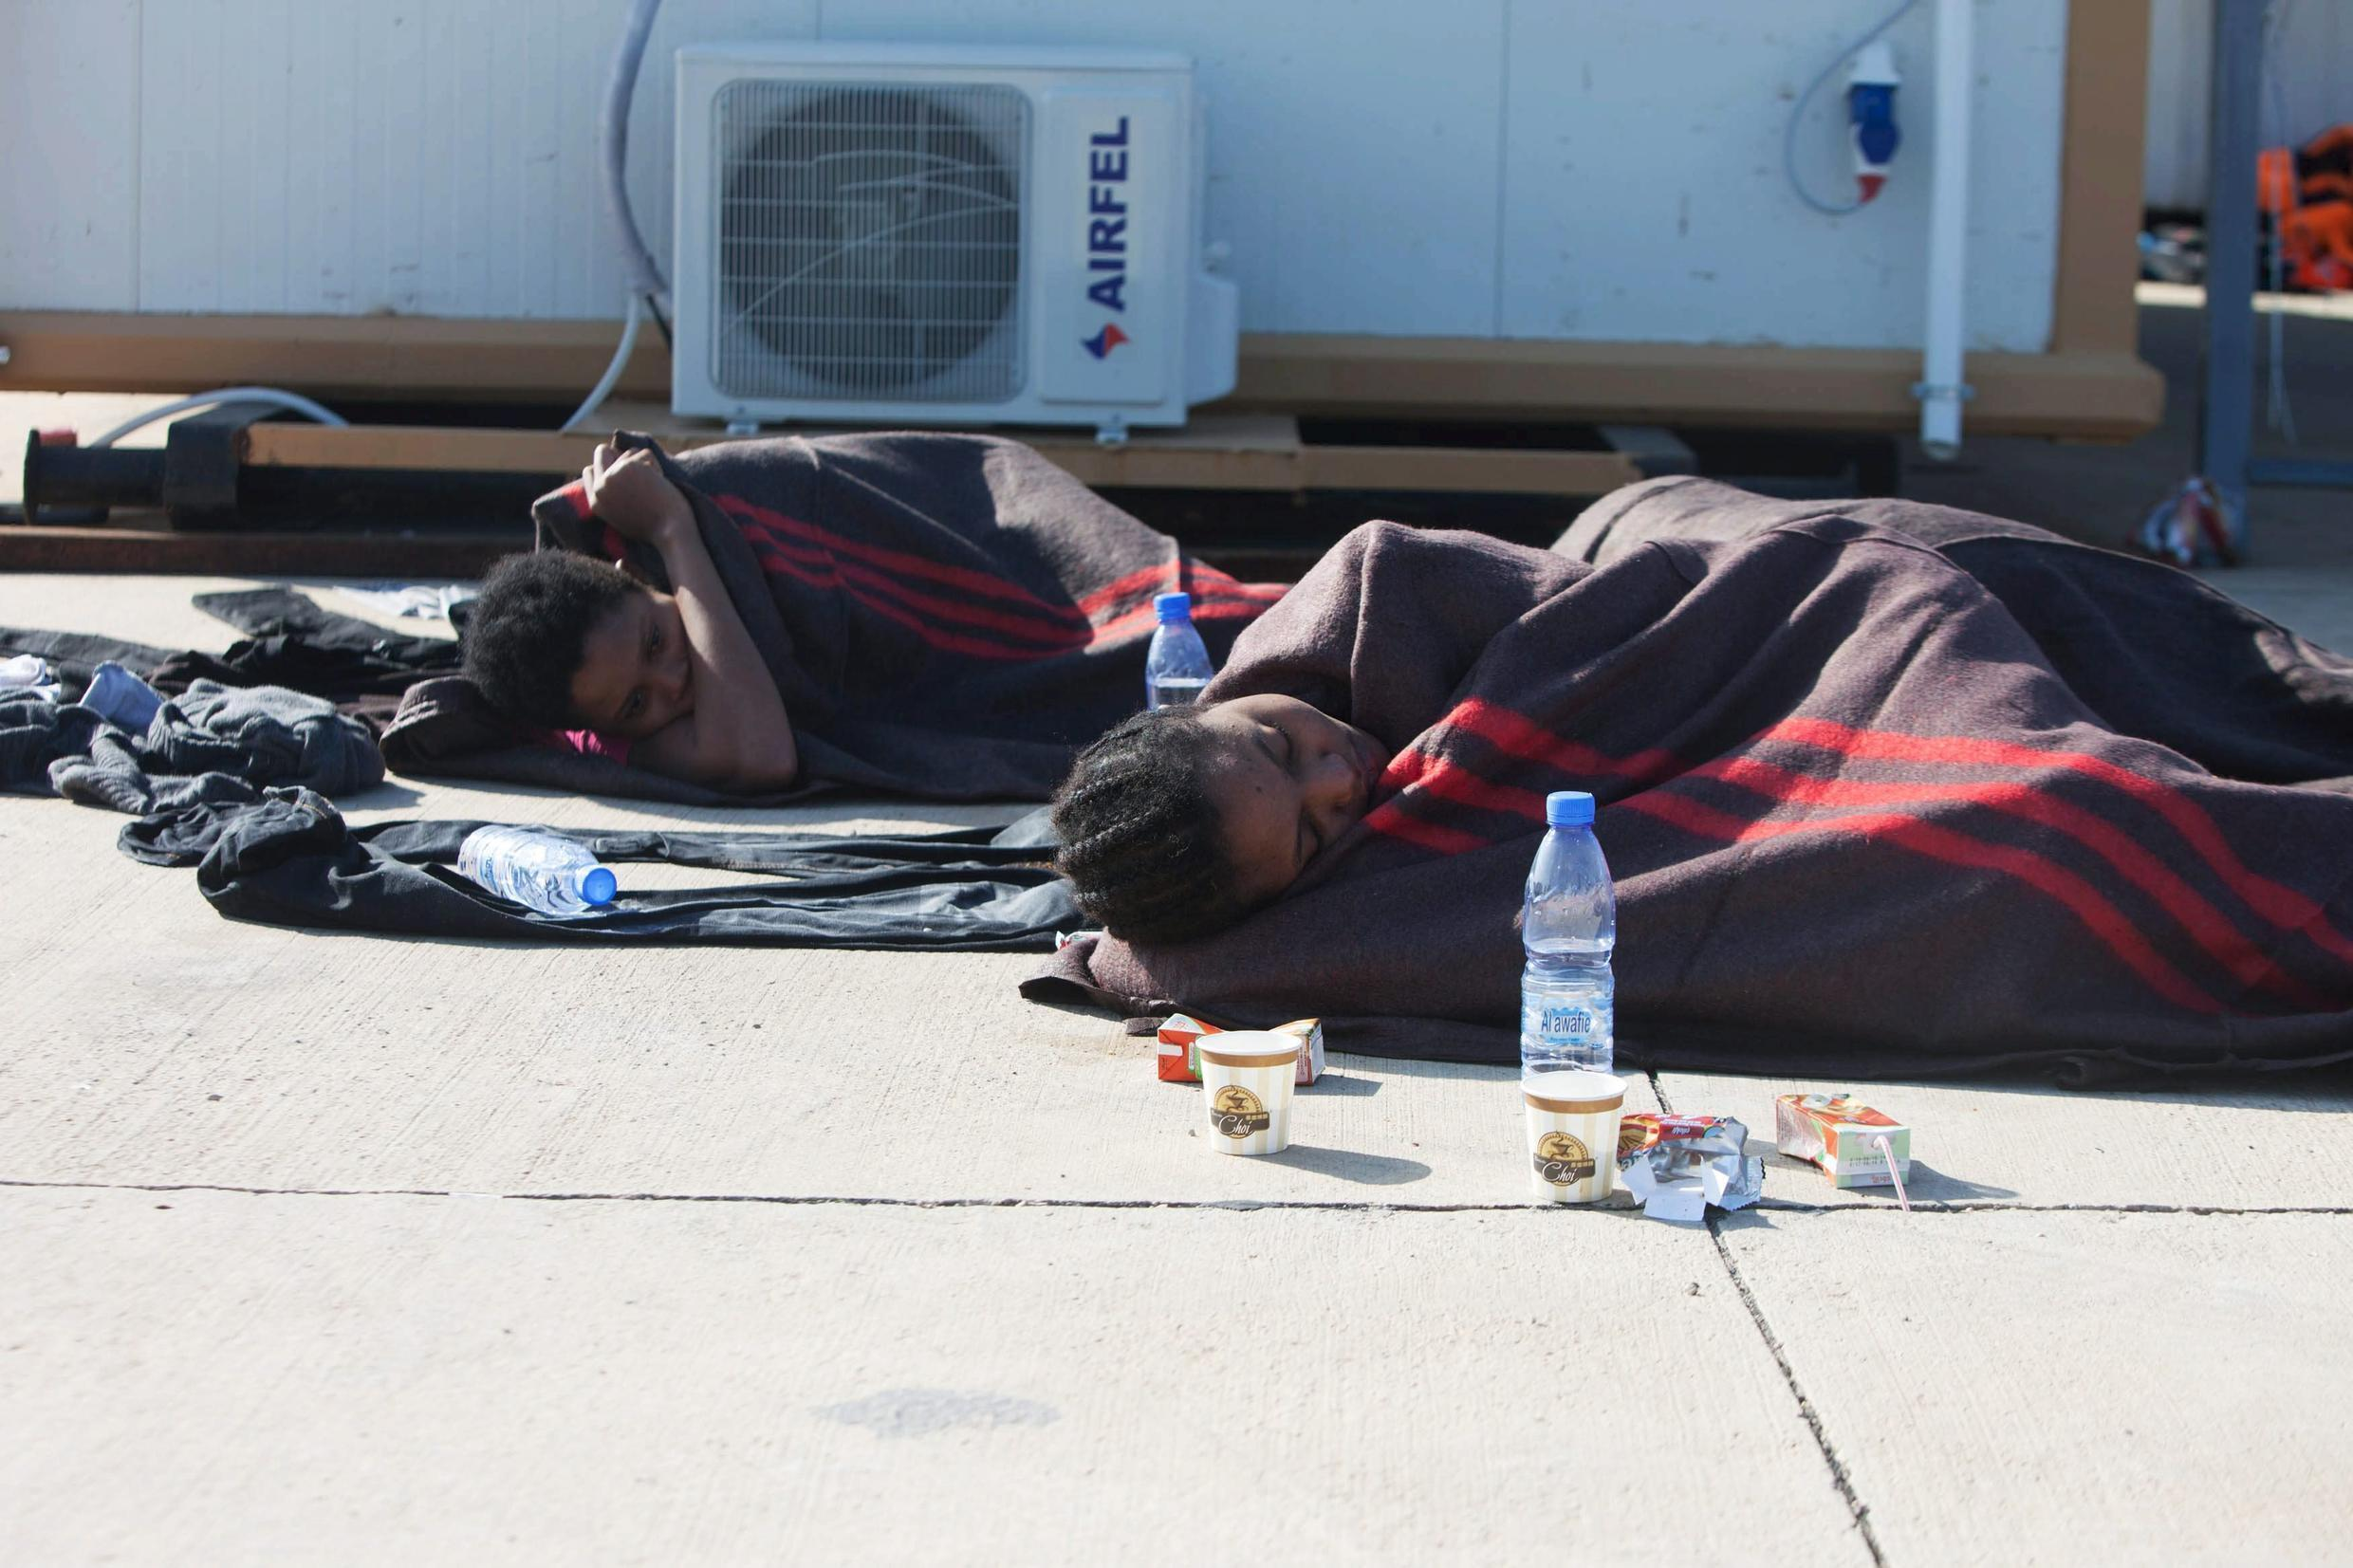 Migrants lay in a navy base, after a boat sank off the coast in Tripoli on 21 December, 2015.